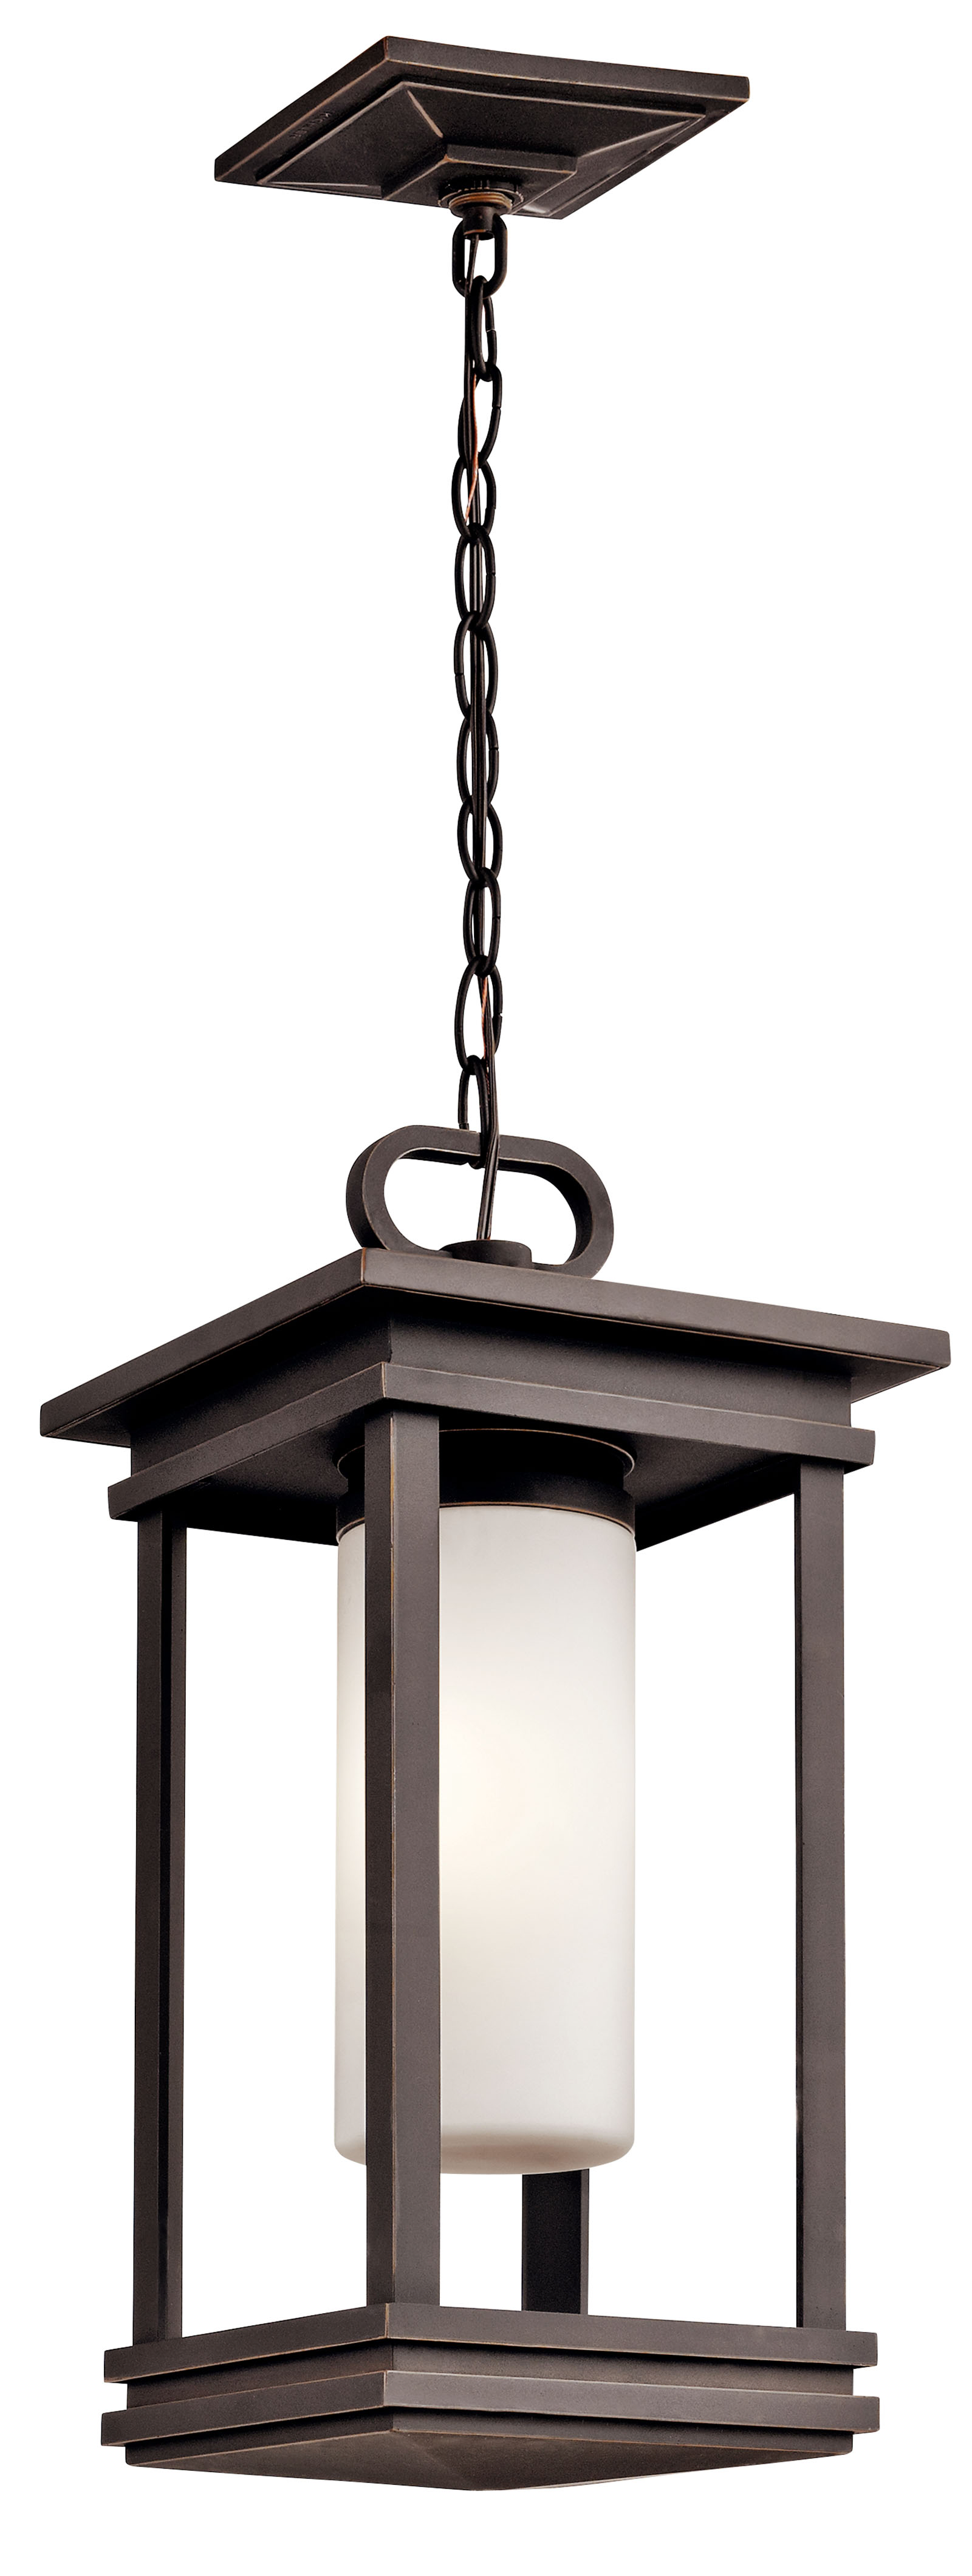 Rubbed Bronze 1-Light Kichler 49473RZLED South Hope Portable LED Lantern with Built-in Bluetooth Speaker